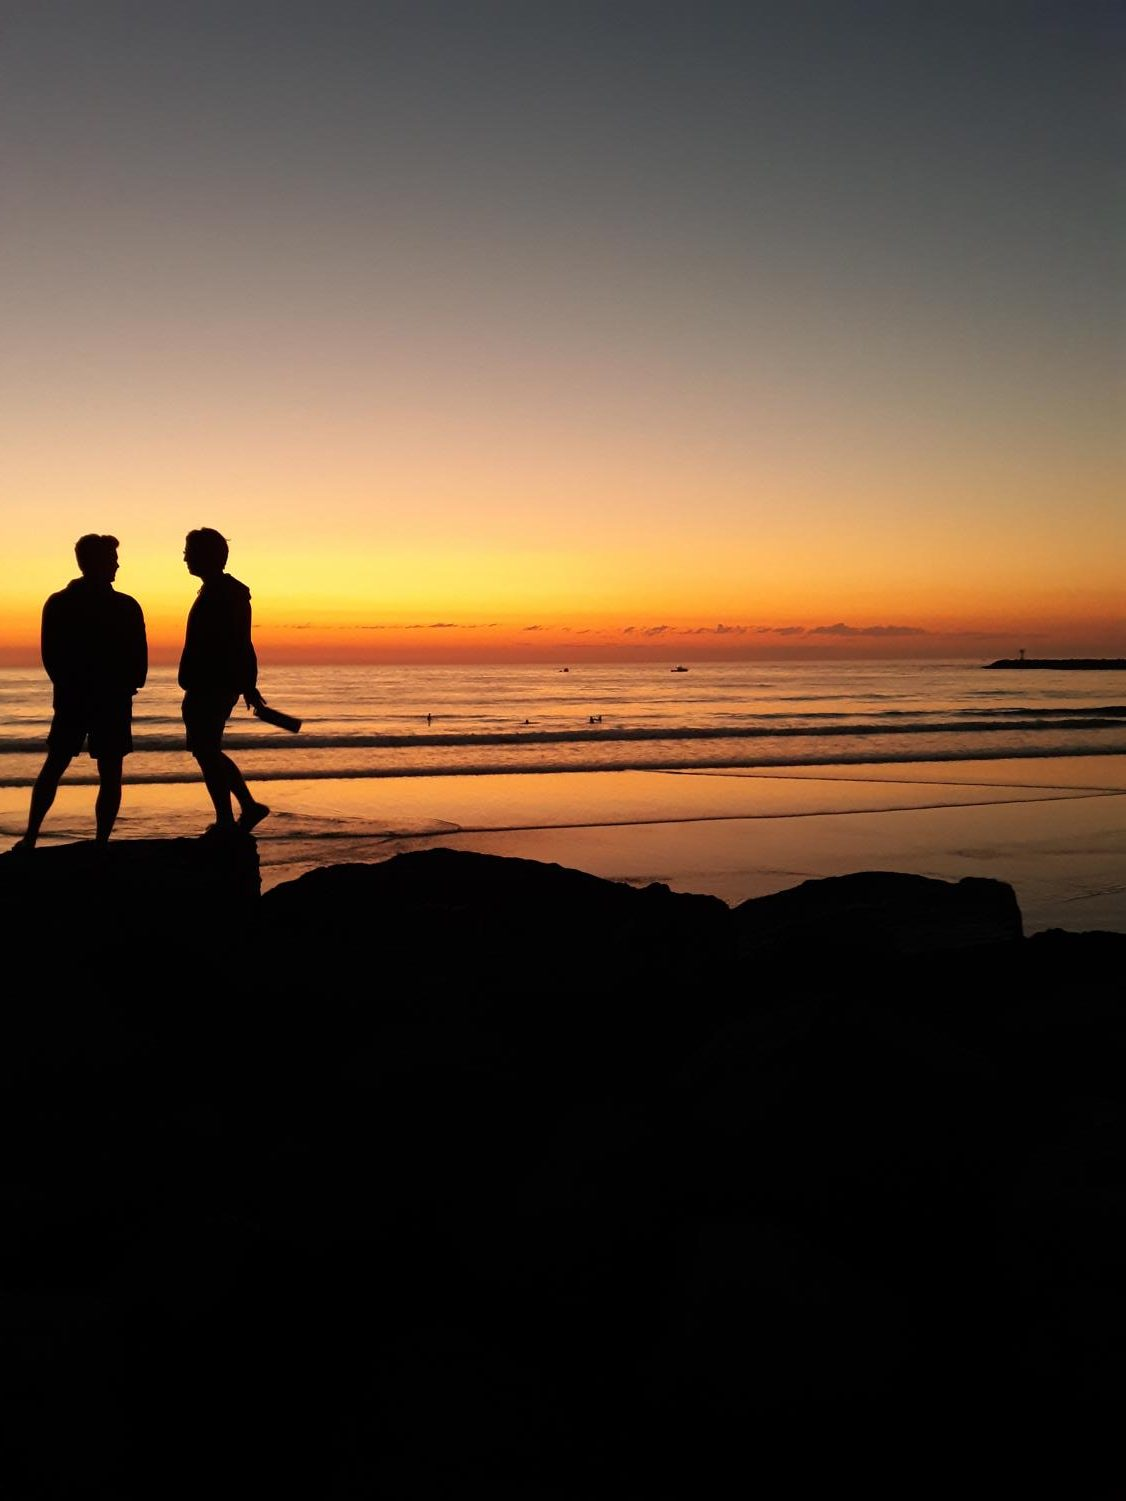 This photo was taken at a beach in San Diego, California.  In the picture there are two silhouettes, standing on rocks at the beach. The sunset is orange and yellow in  which is reflecting onto the ocean, making the it look orange. The purple and dark blue was starting to creep in at the top, signaling that the sun would soon set and the day would soon end.